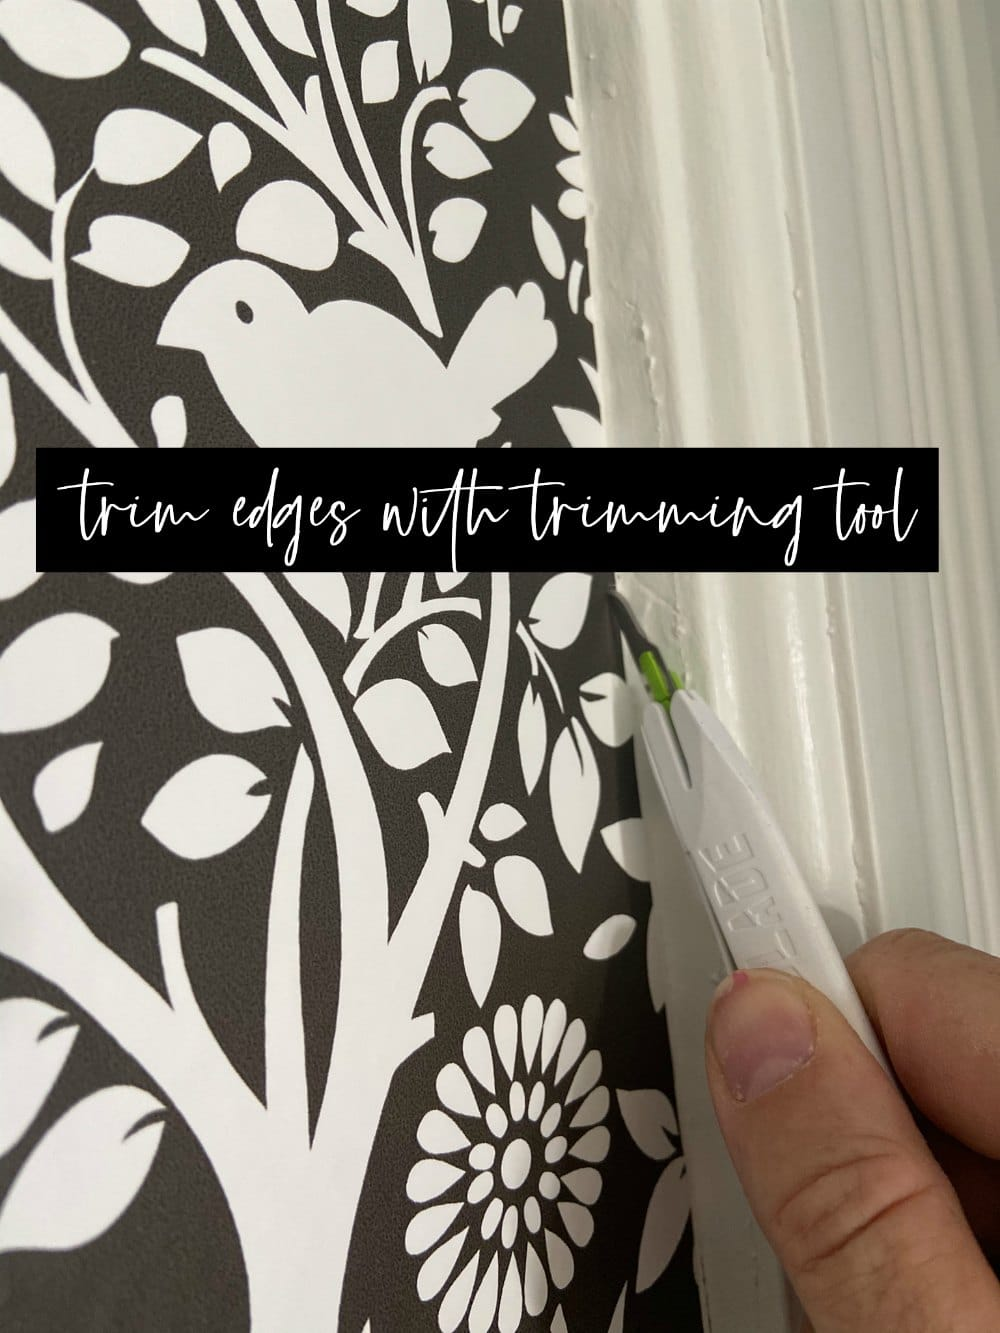 Removable Wallpaper Tips and Tricks! Transform a wall in under an hour with these easy tips and tricks!